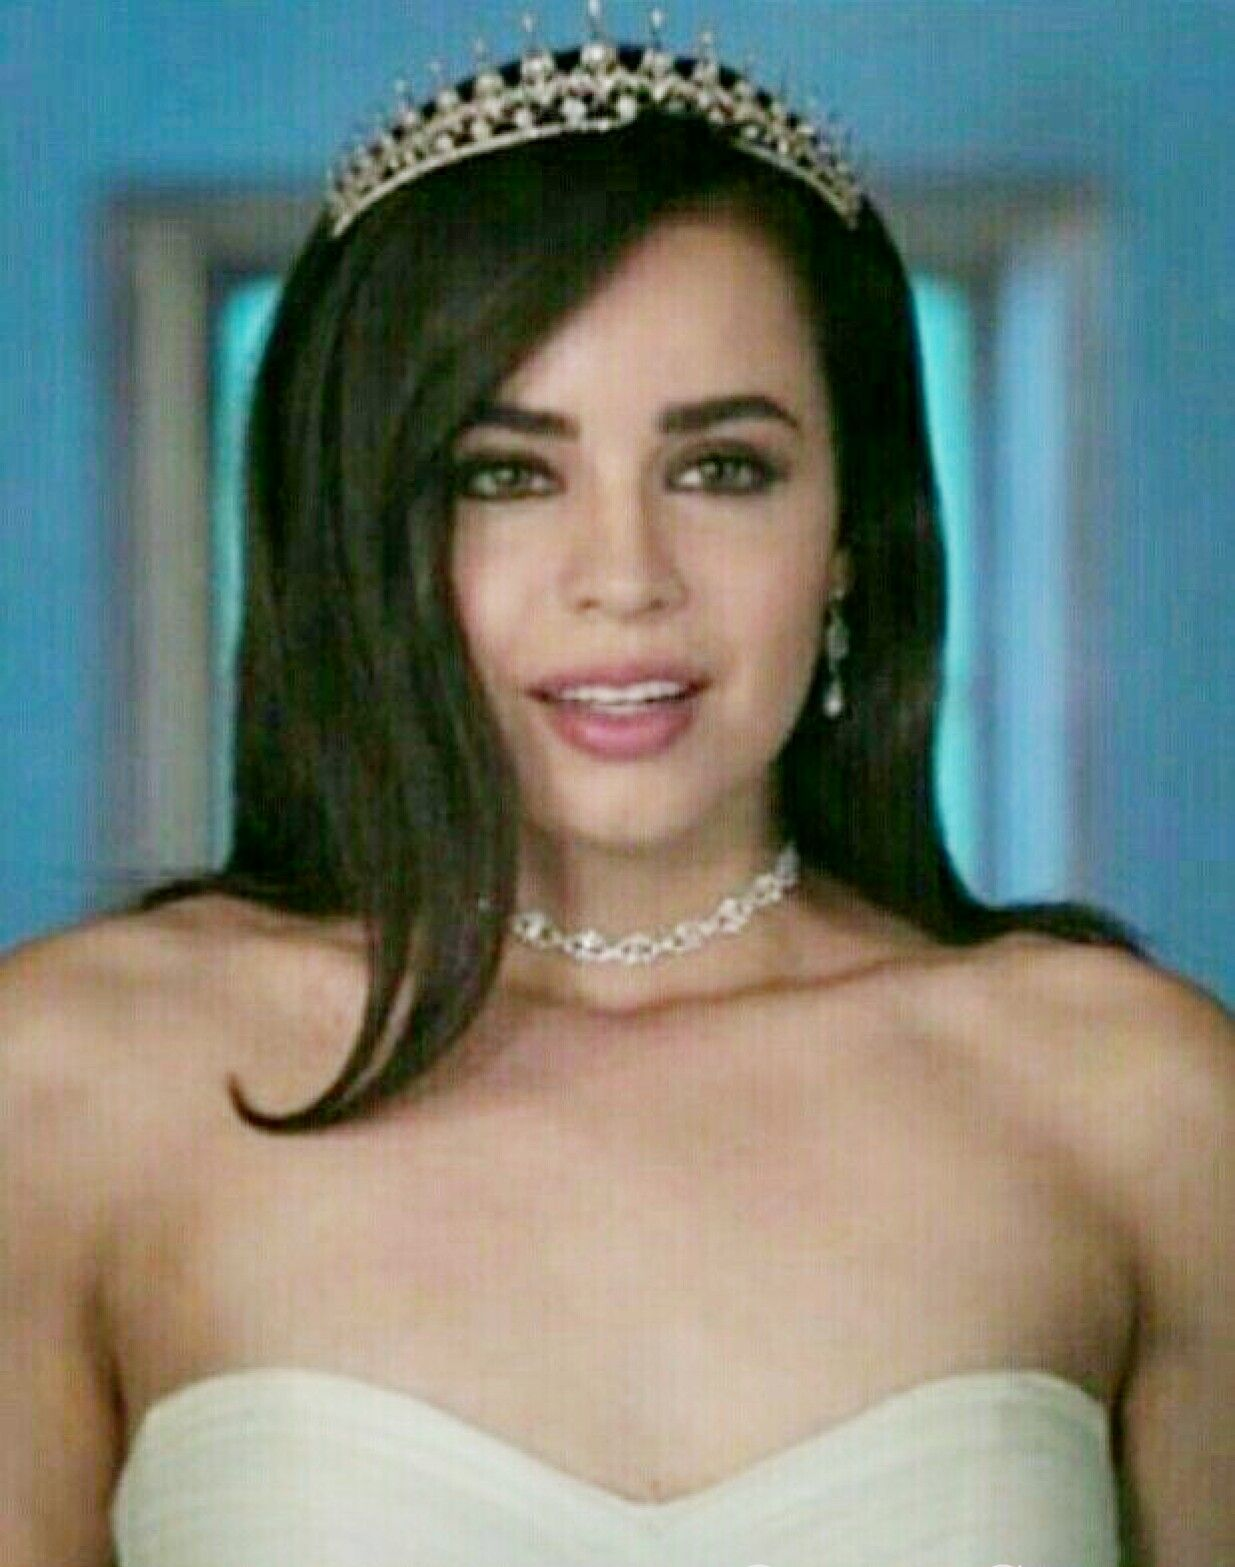 A Cinderella Story If The Shoe Fits 2016 Cast Sofia Carson Another Cinderella Story If The Shoe Fits Sofia Carson Celebridades Famosos